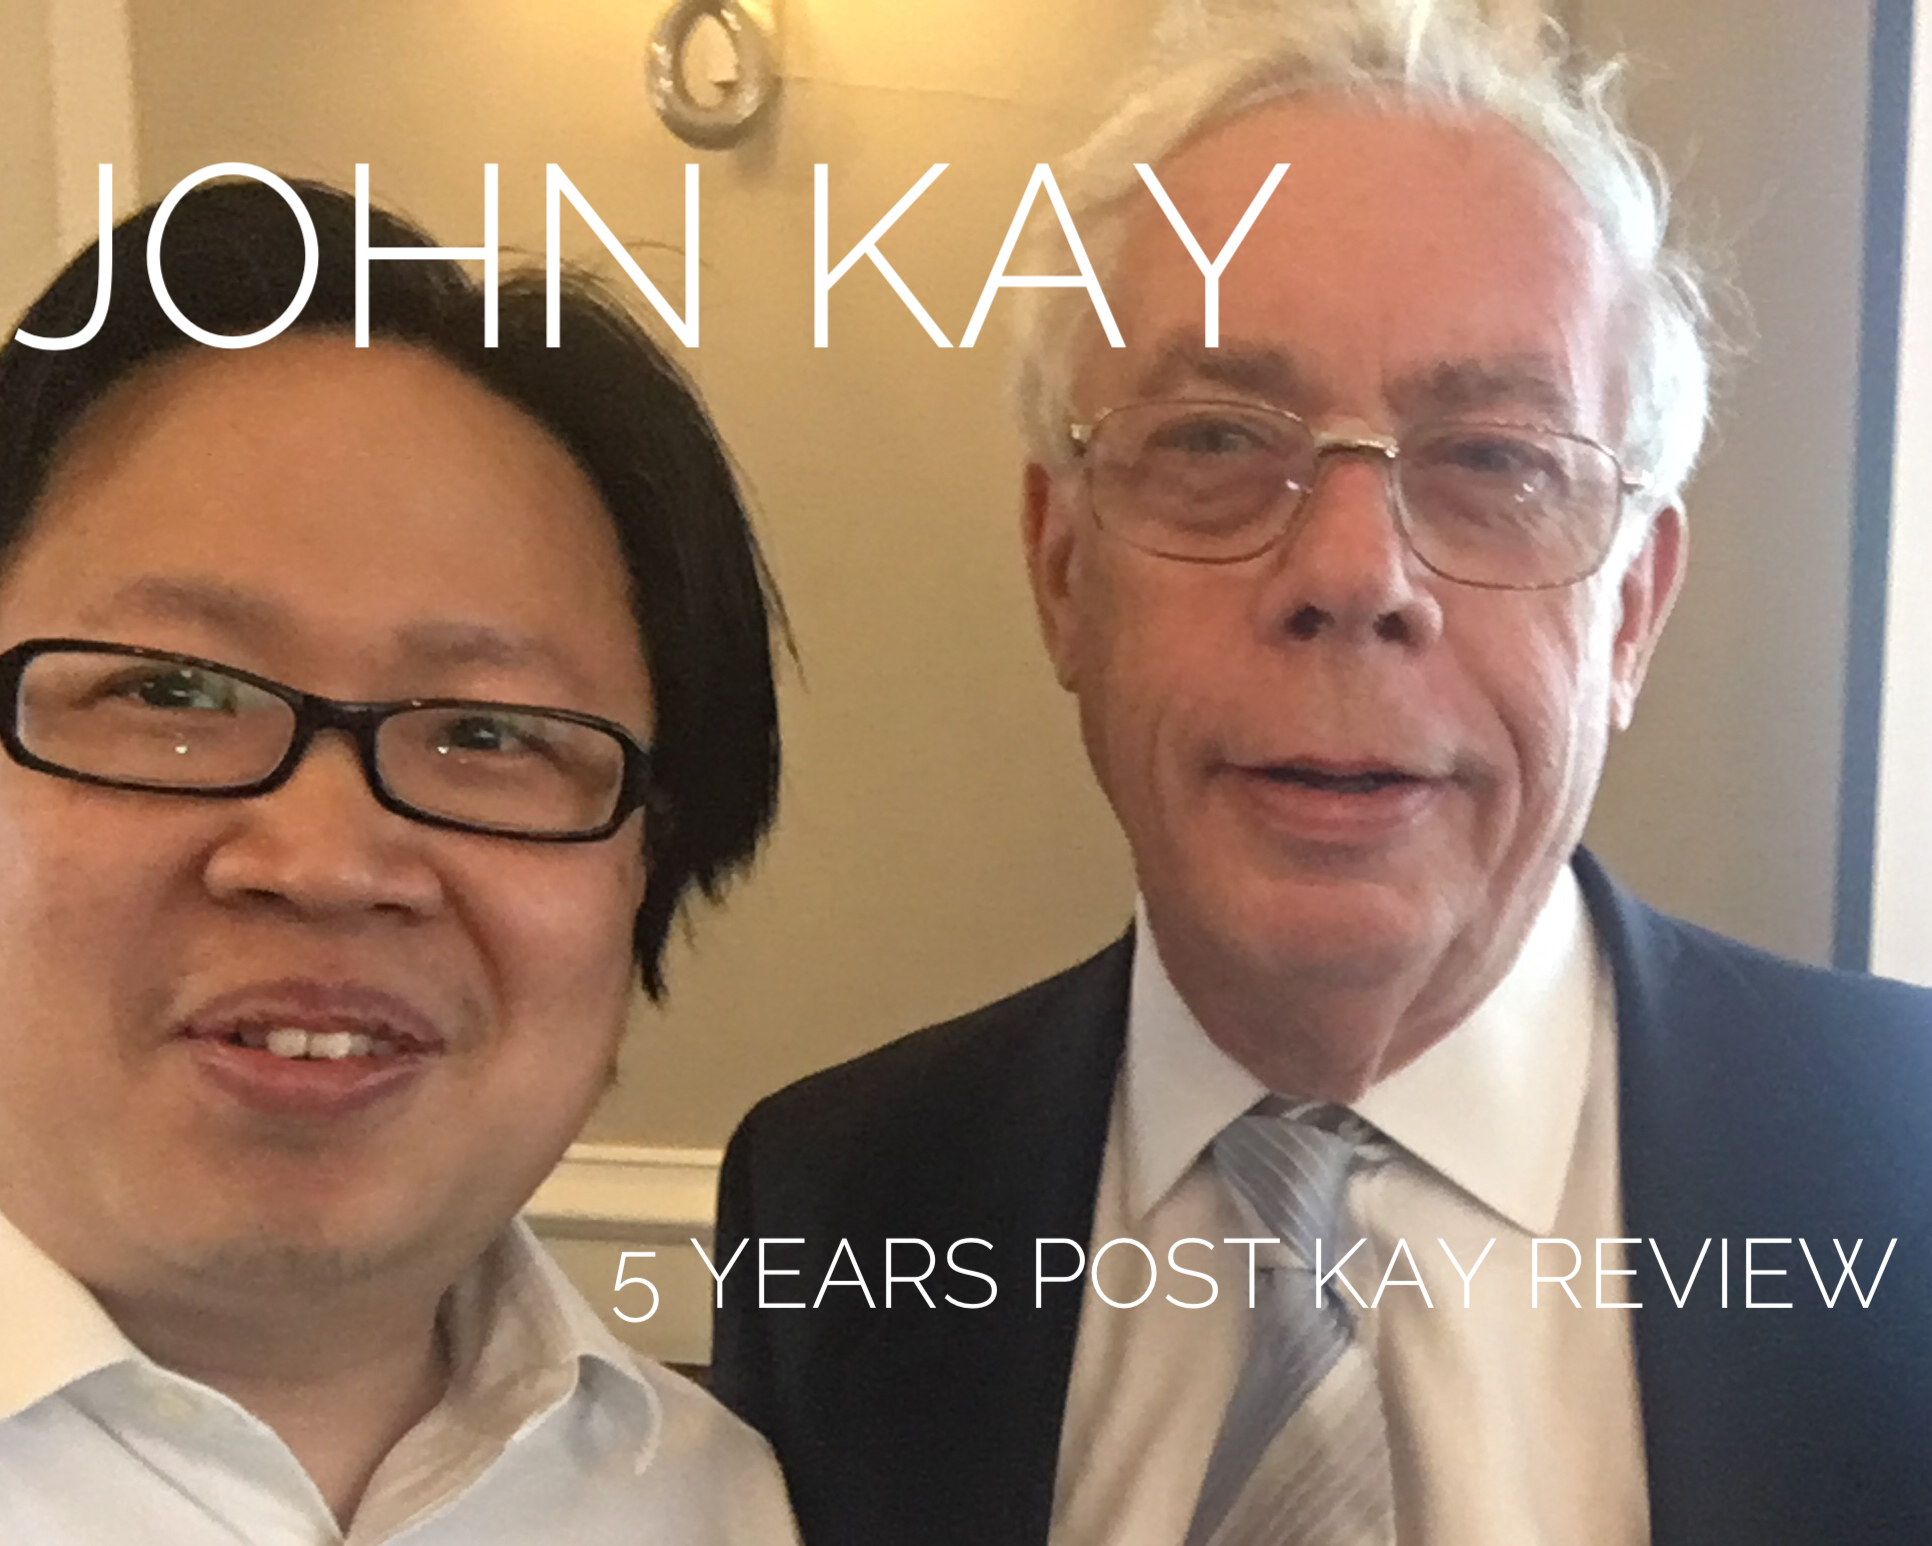 John Kay - 5 years post Kay review on Long-Term decision making in UK Equity markets.